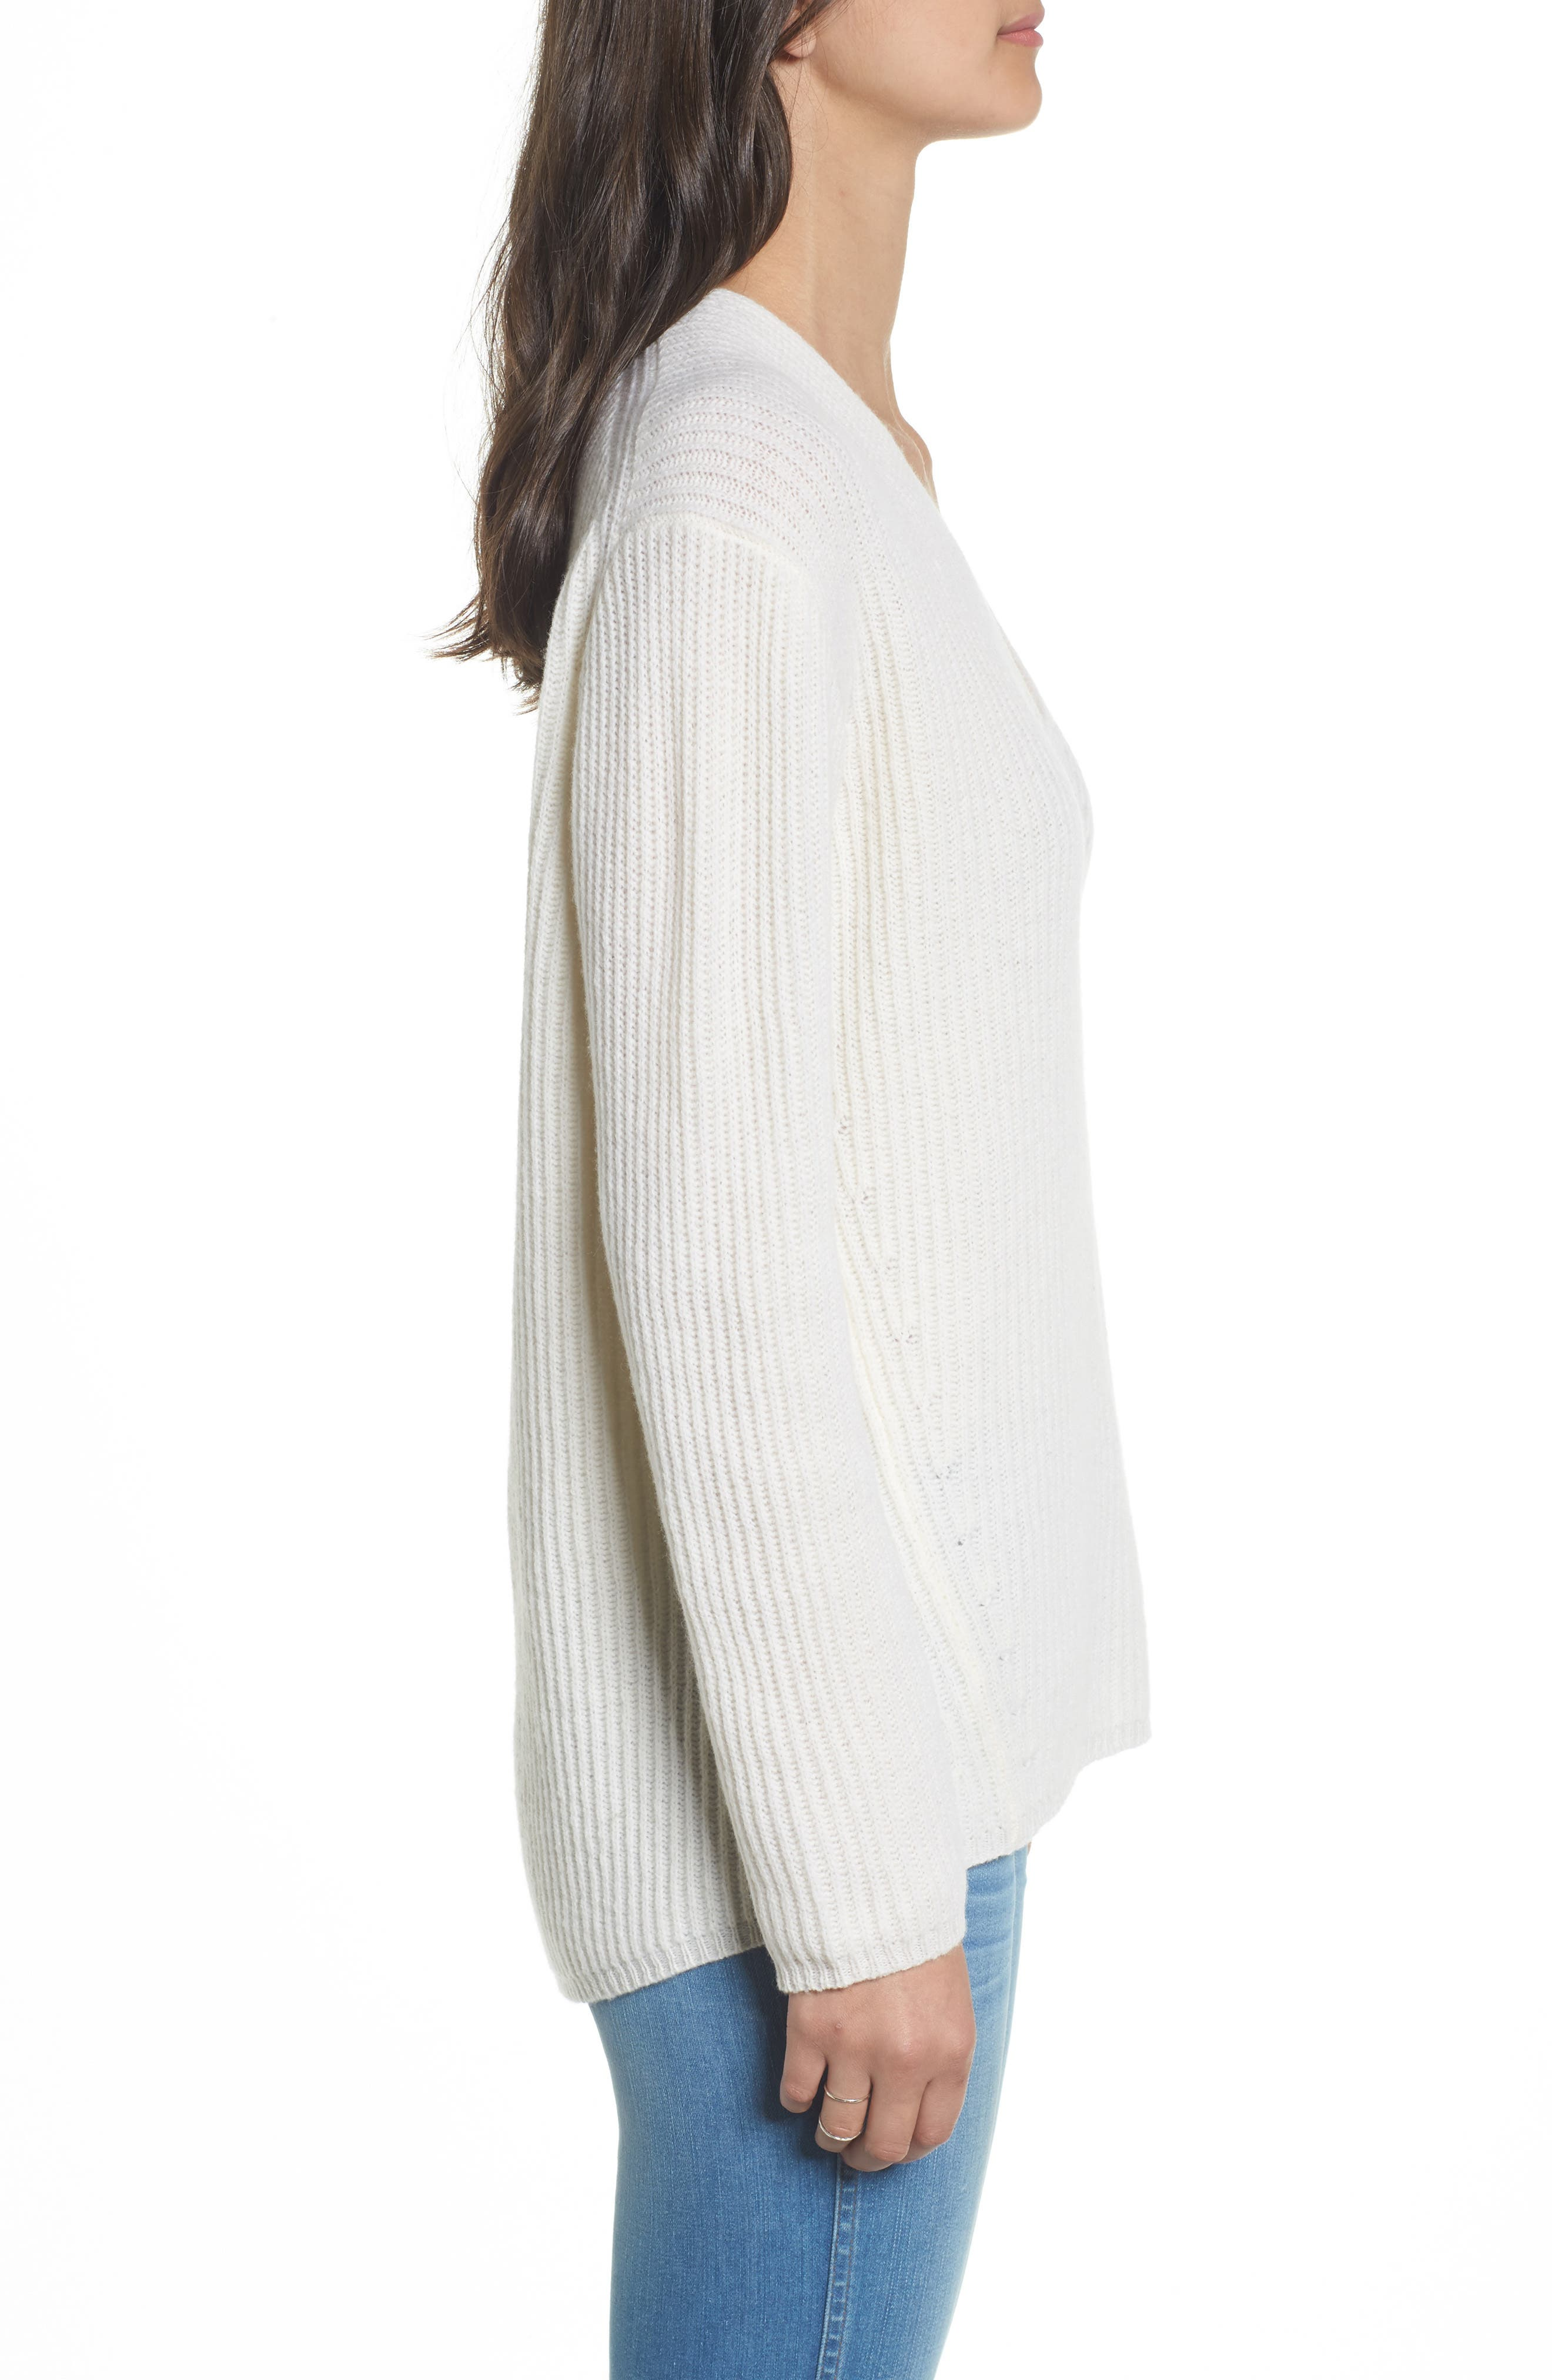 Woodside Pullover Sweater,                             Alternate thumbnail 3, color,                             Antique Cream